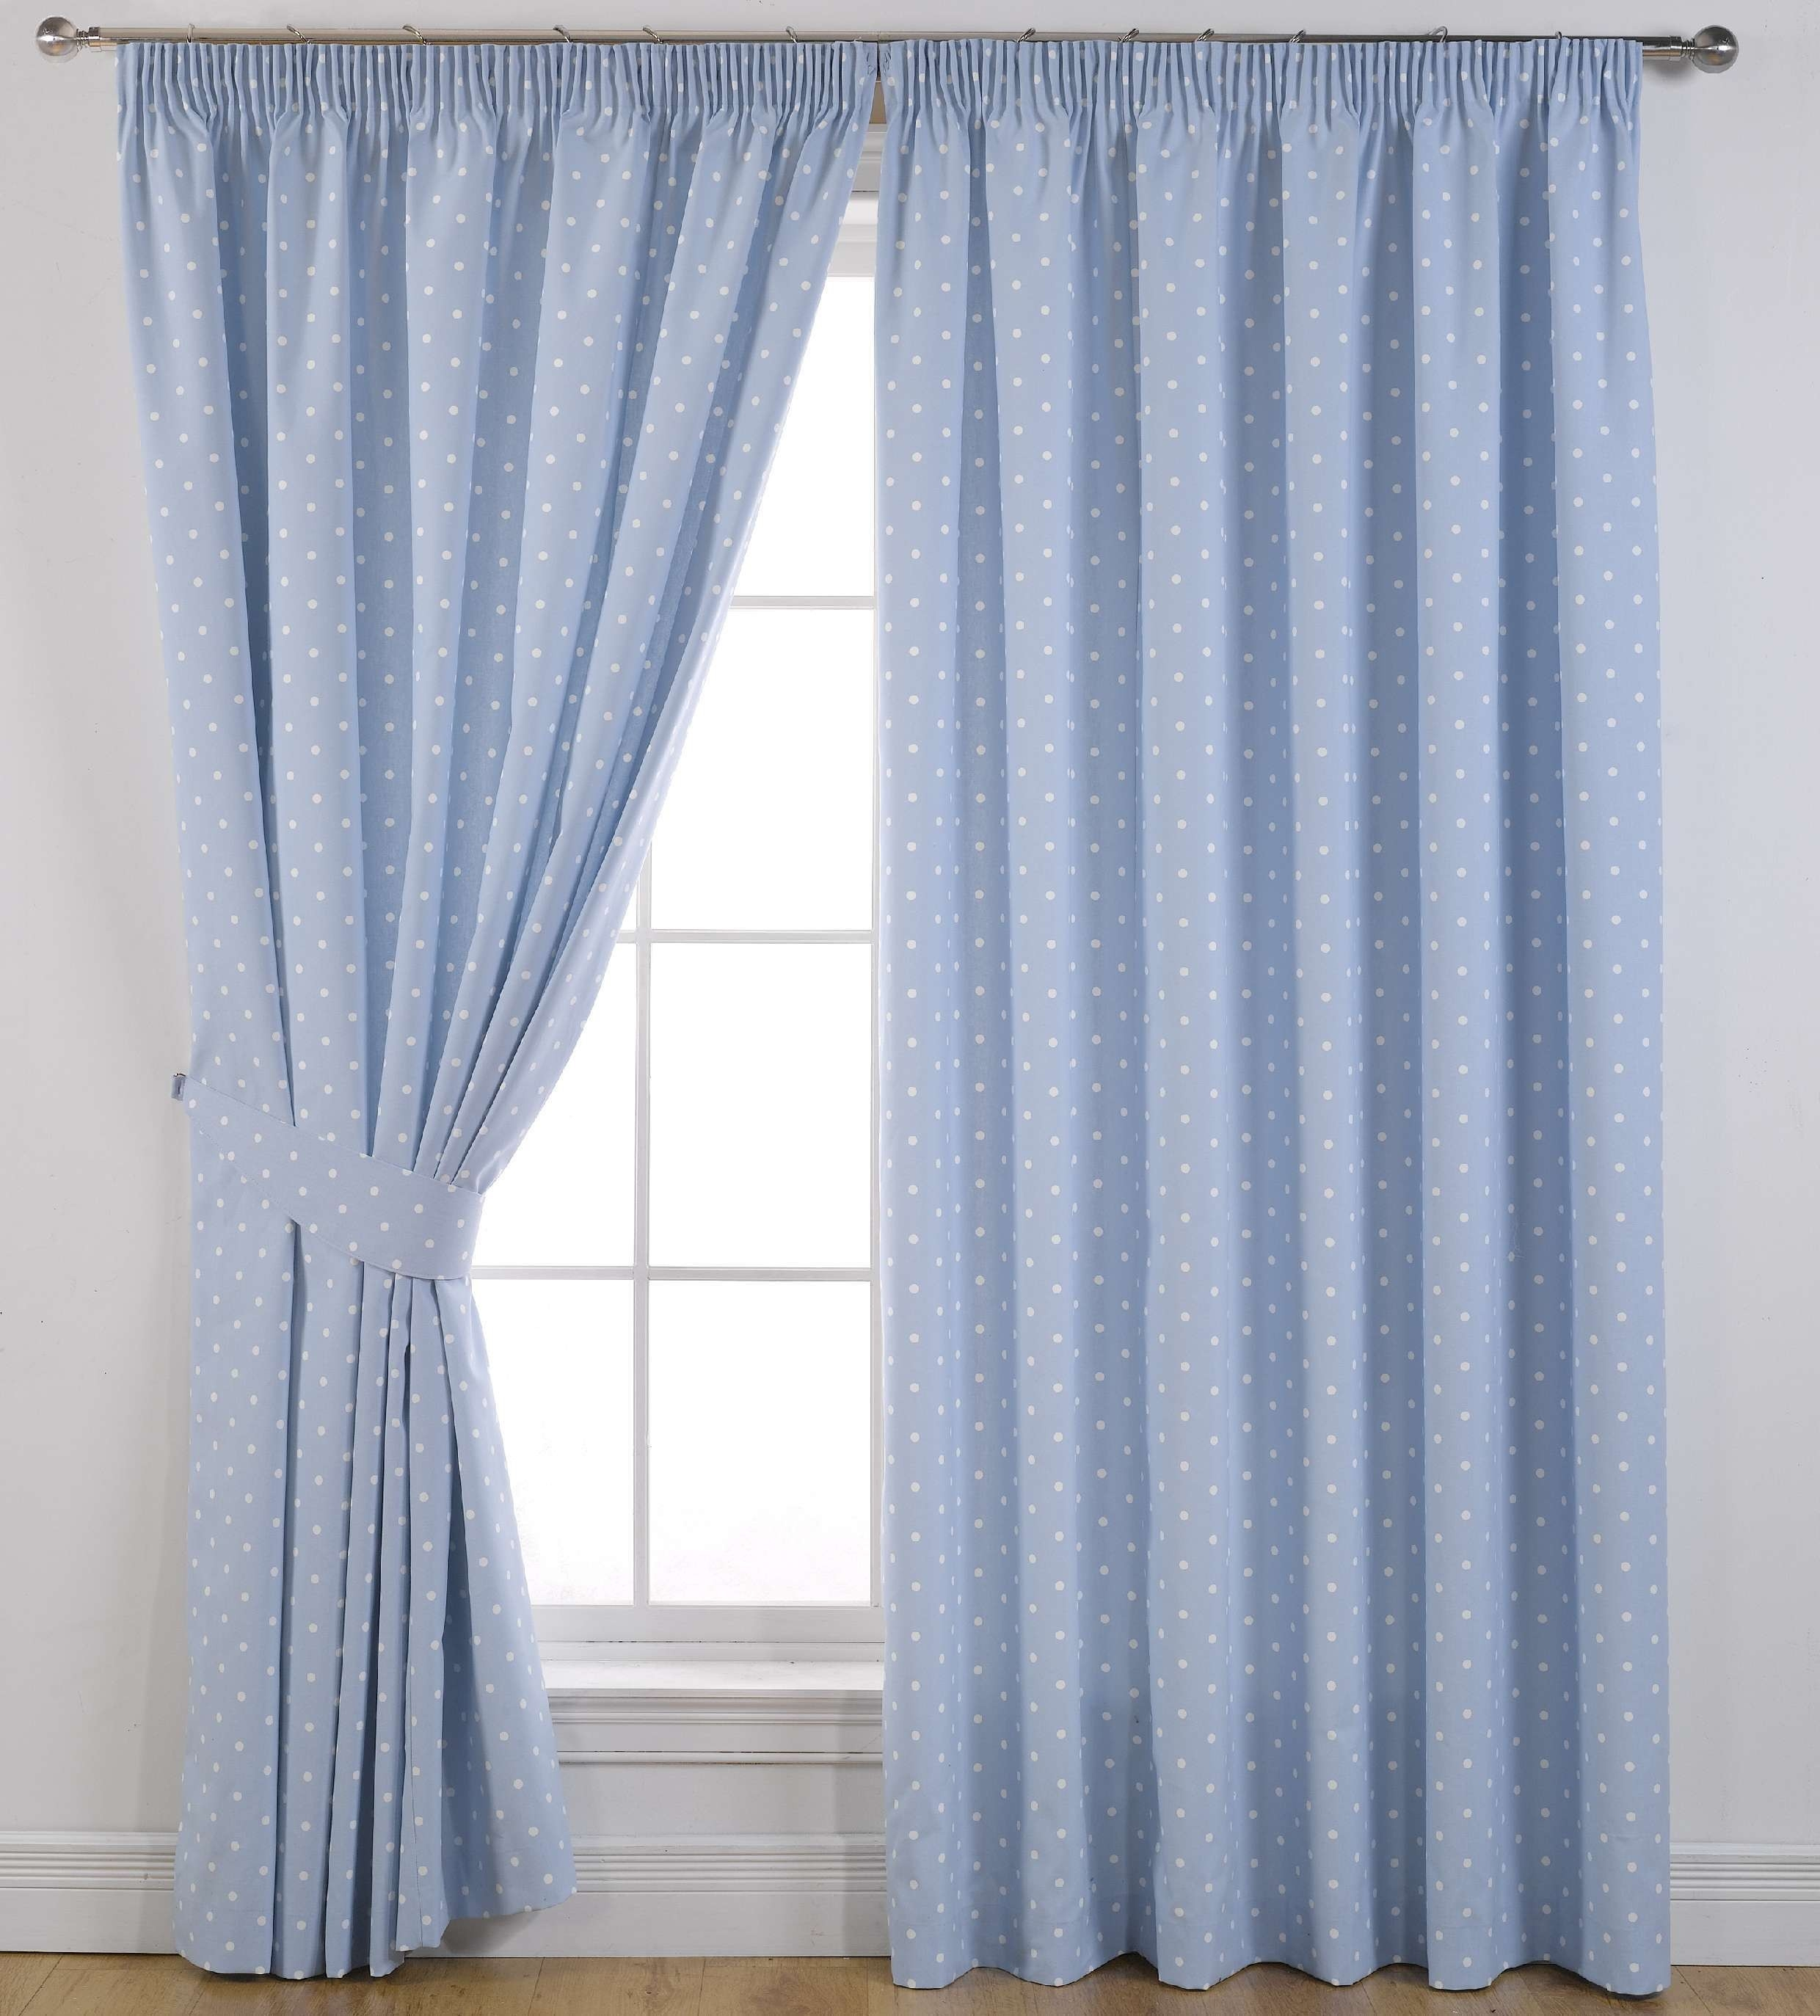 Light Blocking Curtains Insulated Curtains Blackout Drapes Cheap With Regard To Plain White Blackout Curtains (Image 13 of 15)